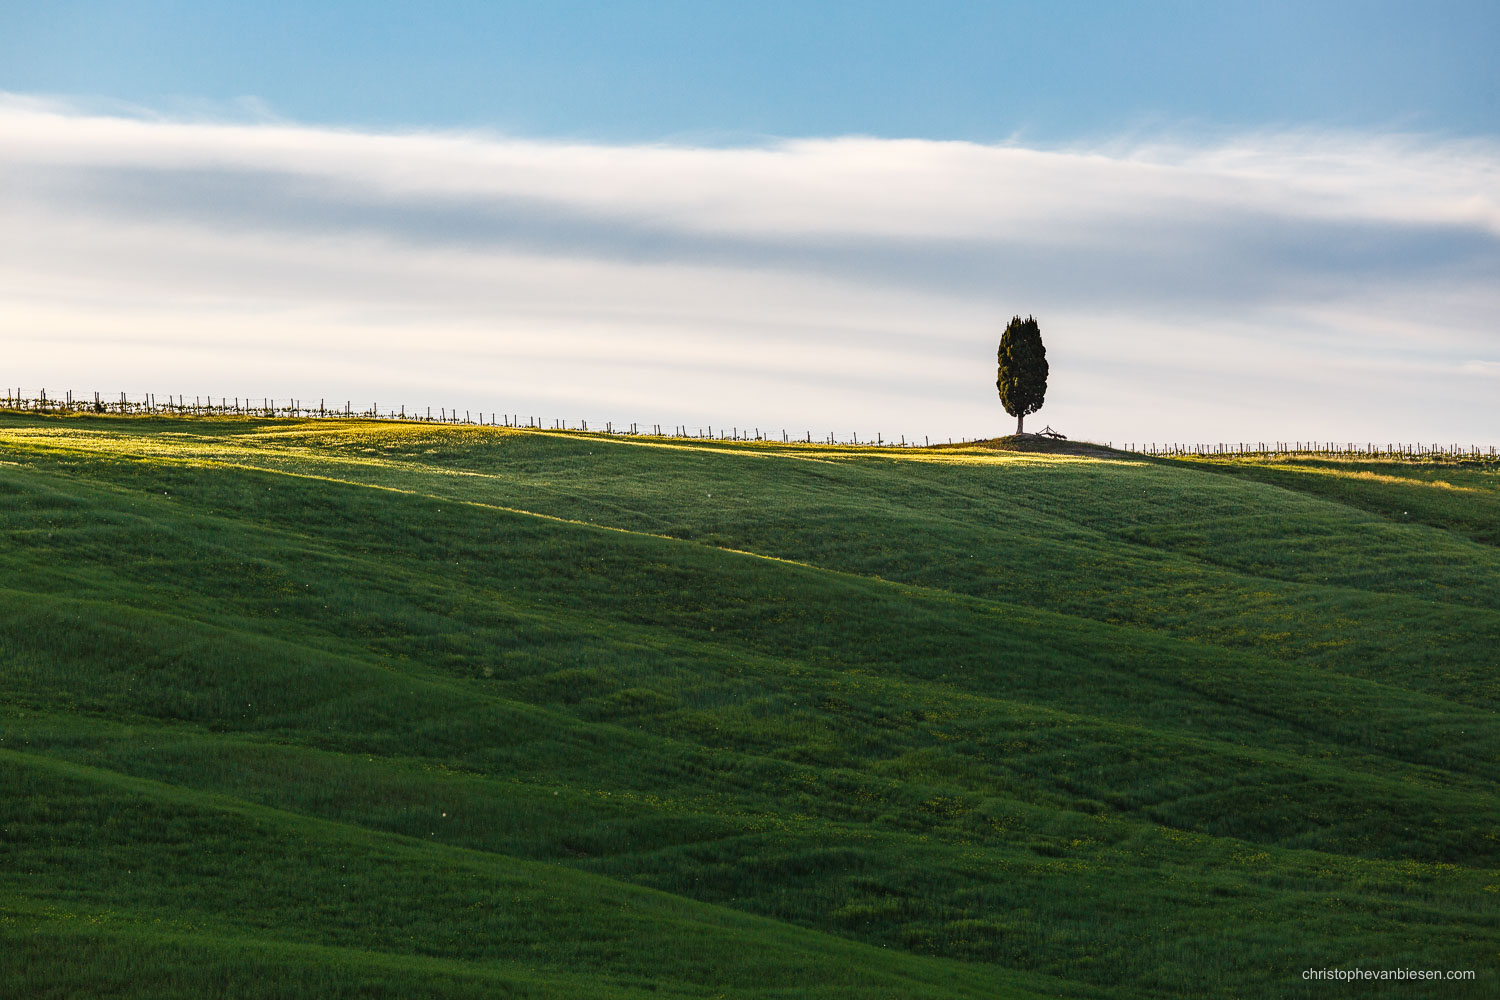 Tuscany - Italy - The day's last sunlight shines on a solitary cypress tree in Italy's Tuscany near San Quirico d'Orcia - Solitary Cypress